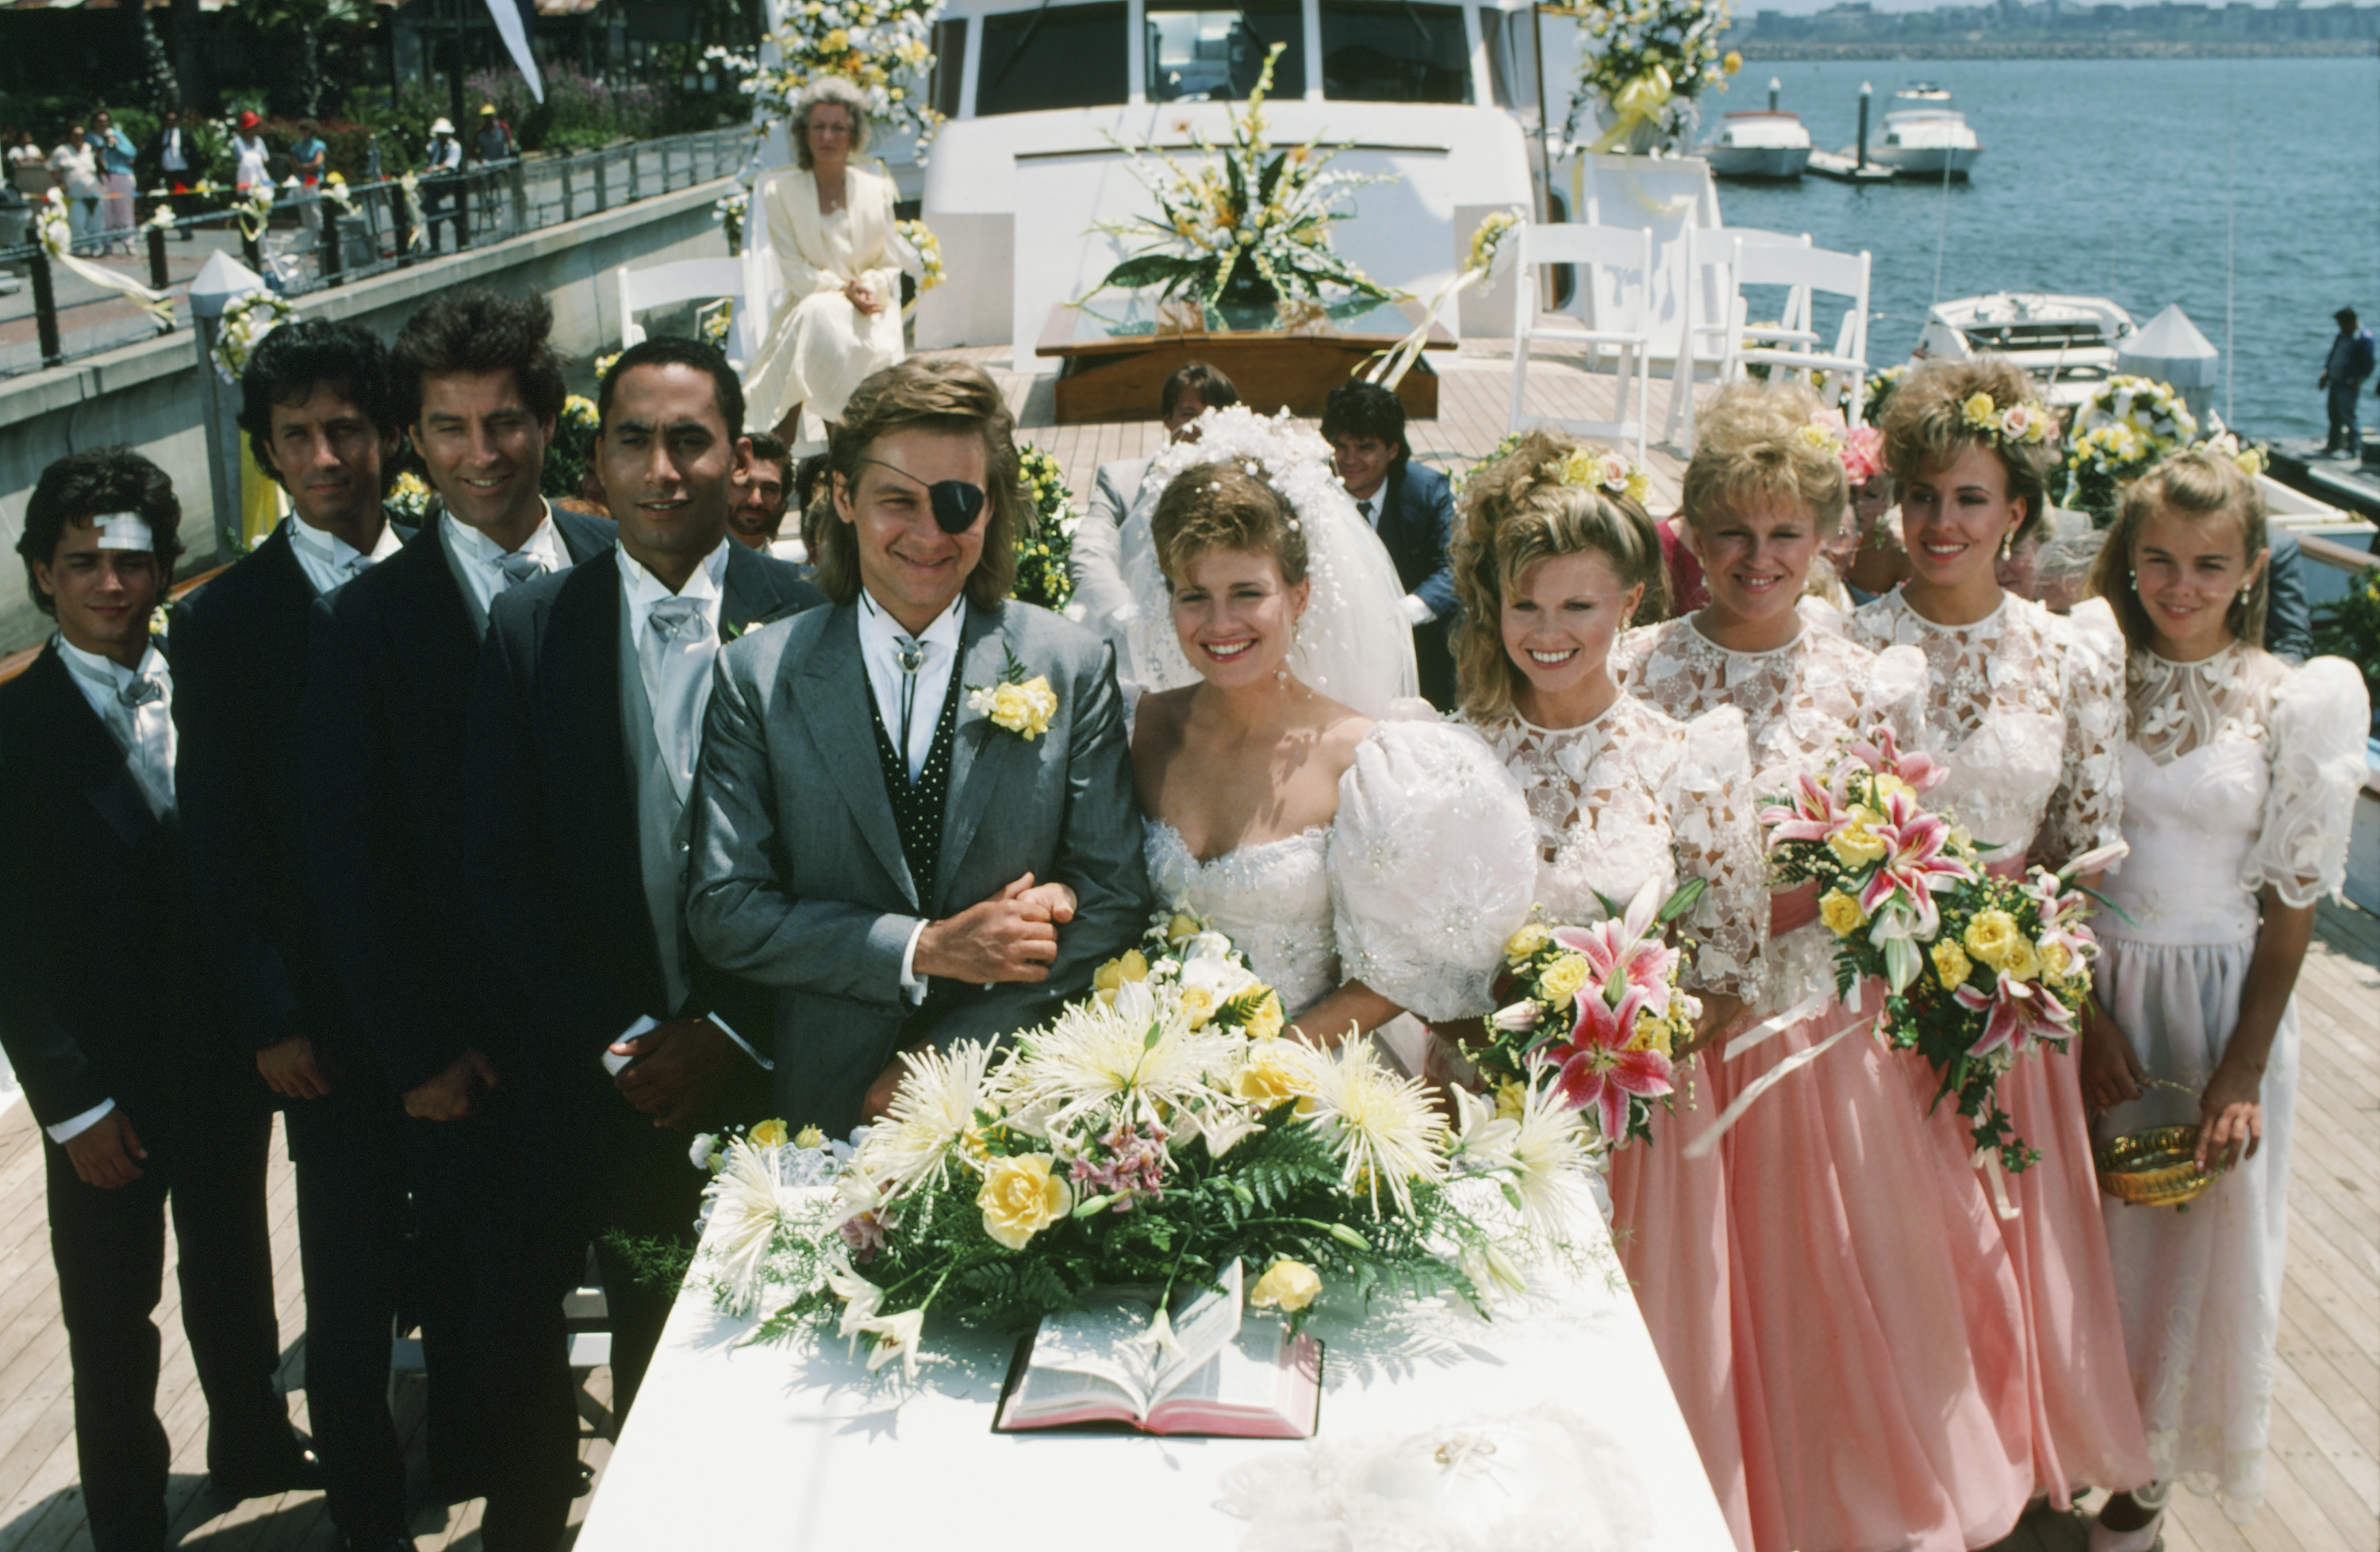 "DAYS OF OUR LIVES -- ""Patch Johnson & Kayla Brady 1st Wedding"" --Pictured: (l-r) Billy Warlock as Frankie Brady, Charles Shaughnessy as Shane Donovan, Drake Hogestyn as John Black/Roman Brady, Richard Biggs as Marcus Hunter, Stephen Nichols as Steve ""Patch"" Johnson, Mary Beth Evans as Dr. Kayla Brady Johnson, Patsy Pease as Kimberly Donovan, Judi Evans as Adrienne Johnson, Genie Francis as Diana Colville, Christie Clark as Carrie Brady -- (Photo by: Ron Tom/NBC/NBCU Photo Bank via Getty Images)"